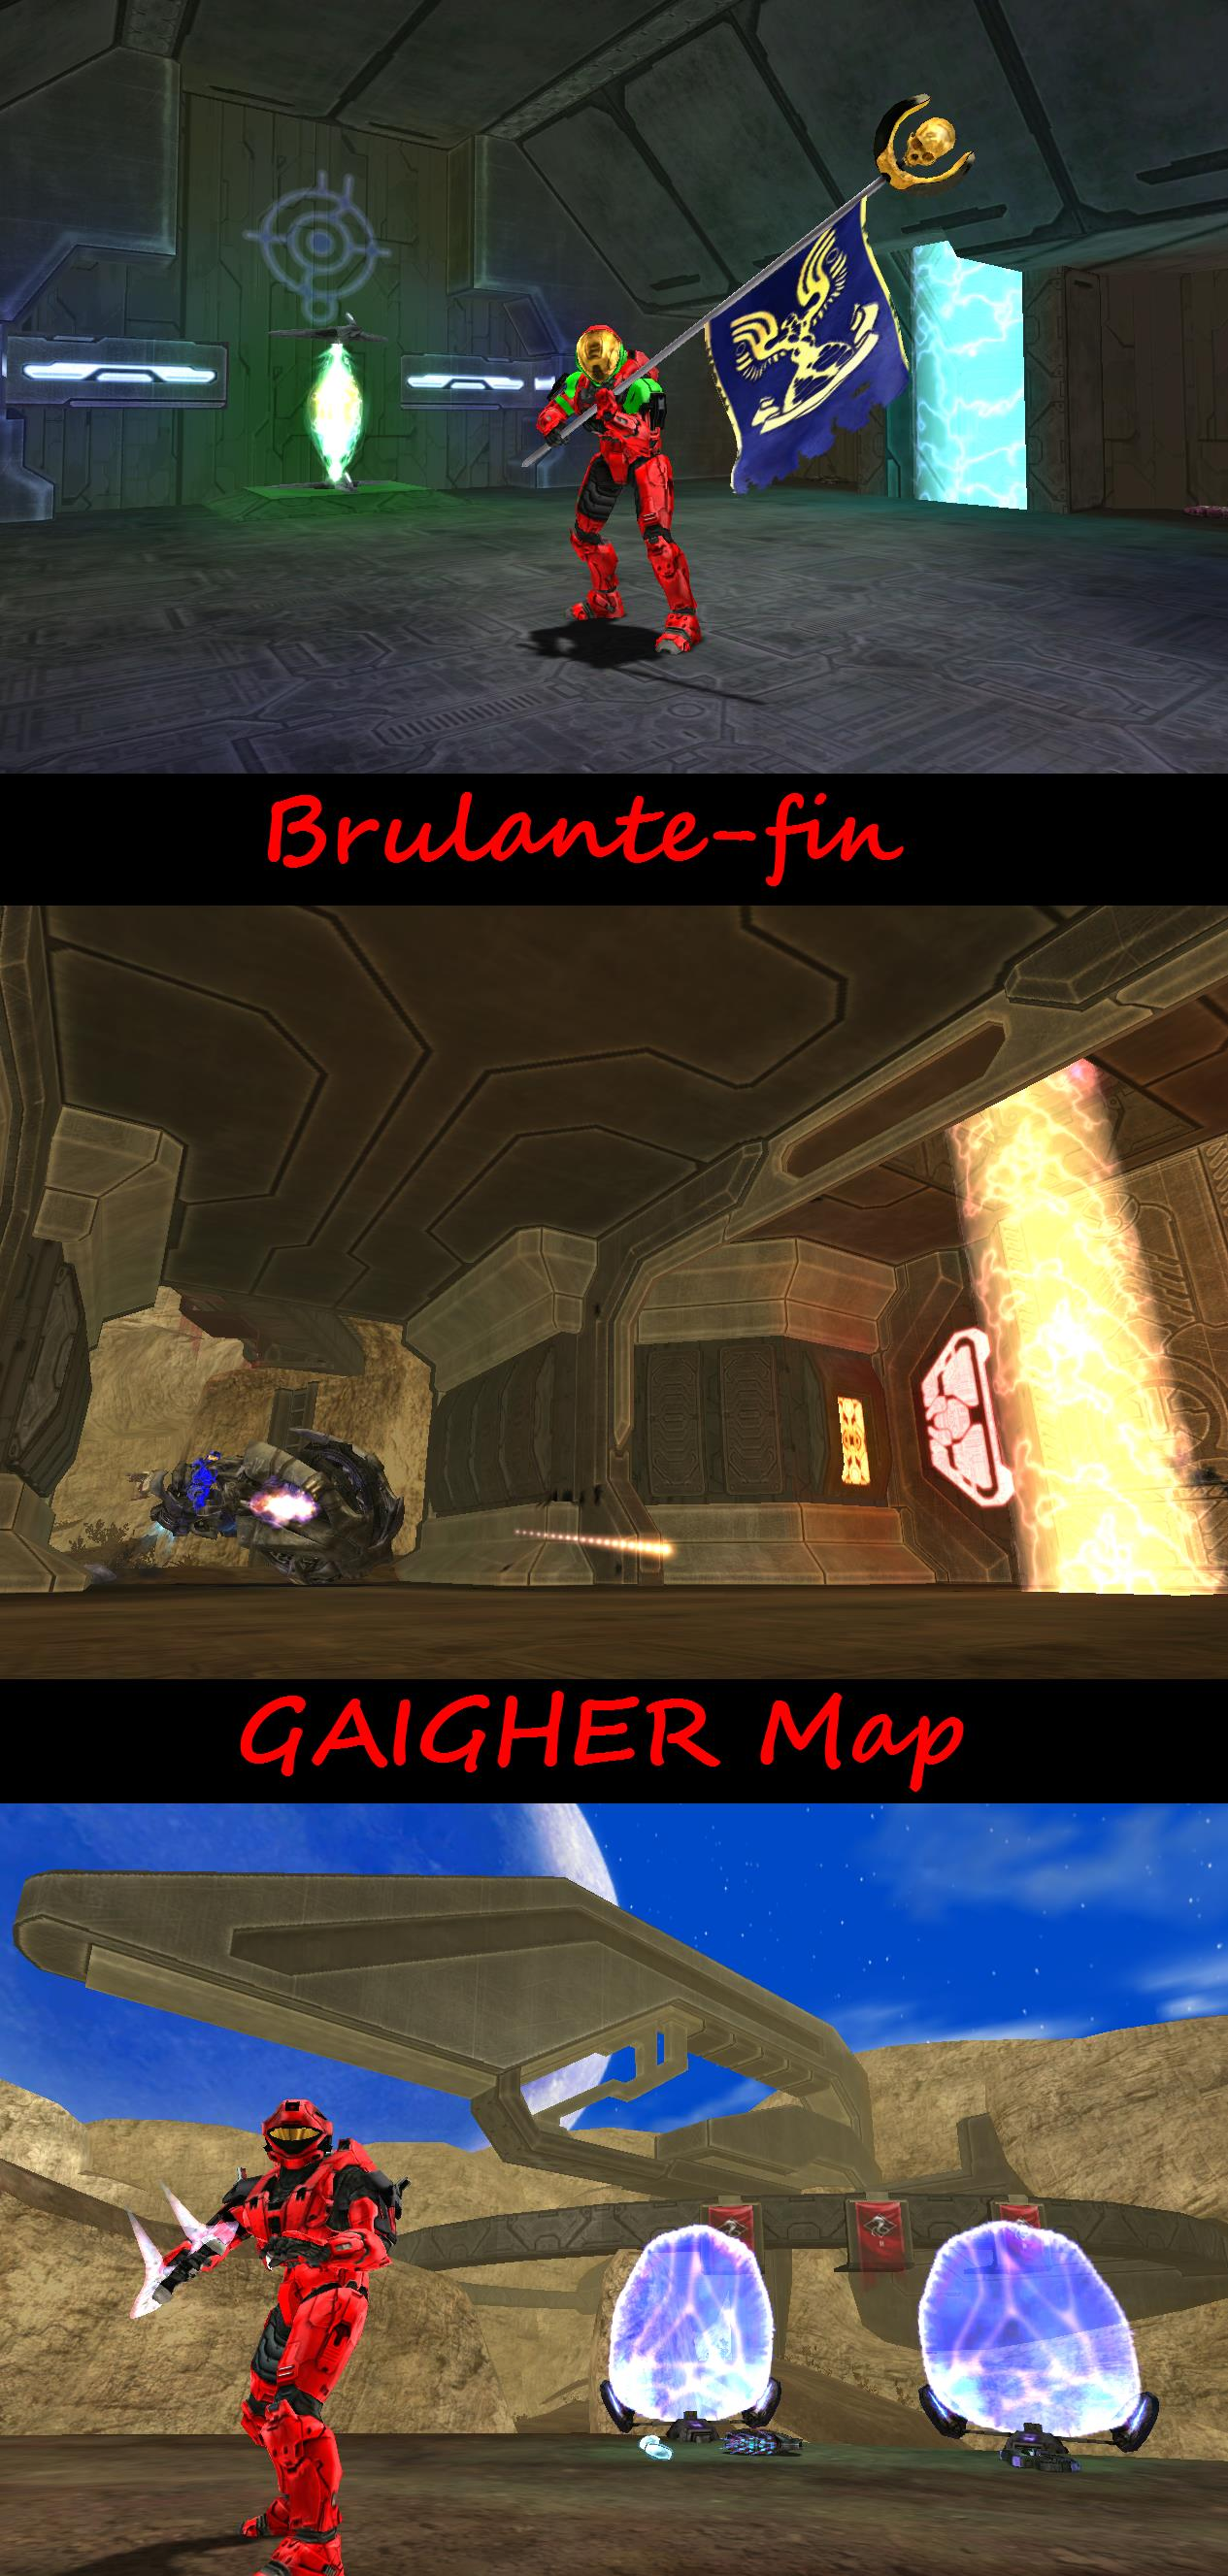 Brulante-Fin Brulante-Fin maphaloce map halo ce<br />maphalo halomap carte cartes cr&eacute;ation GAIGHER mod